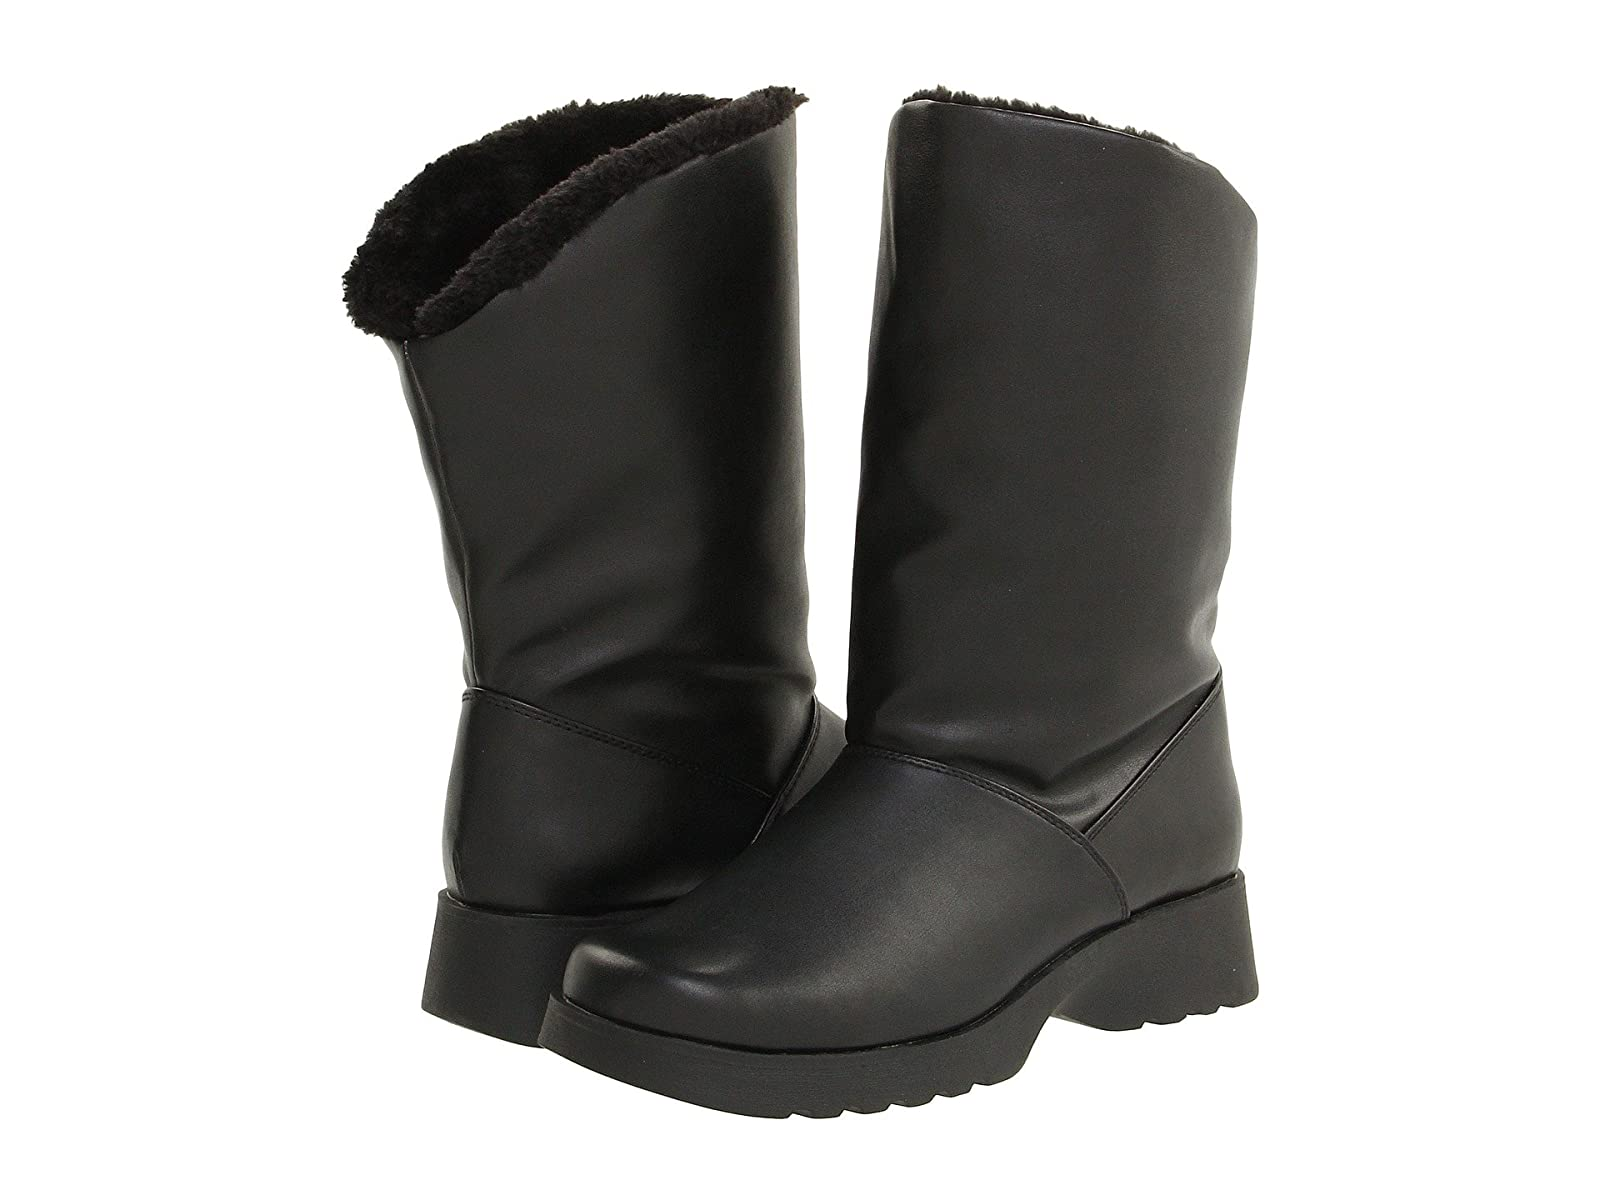 Tundra Boots AveryEconomical and quality shoes